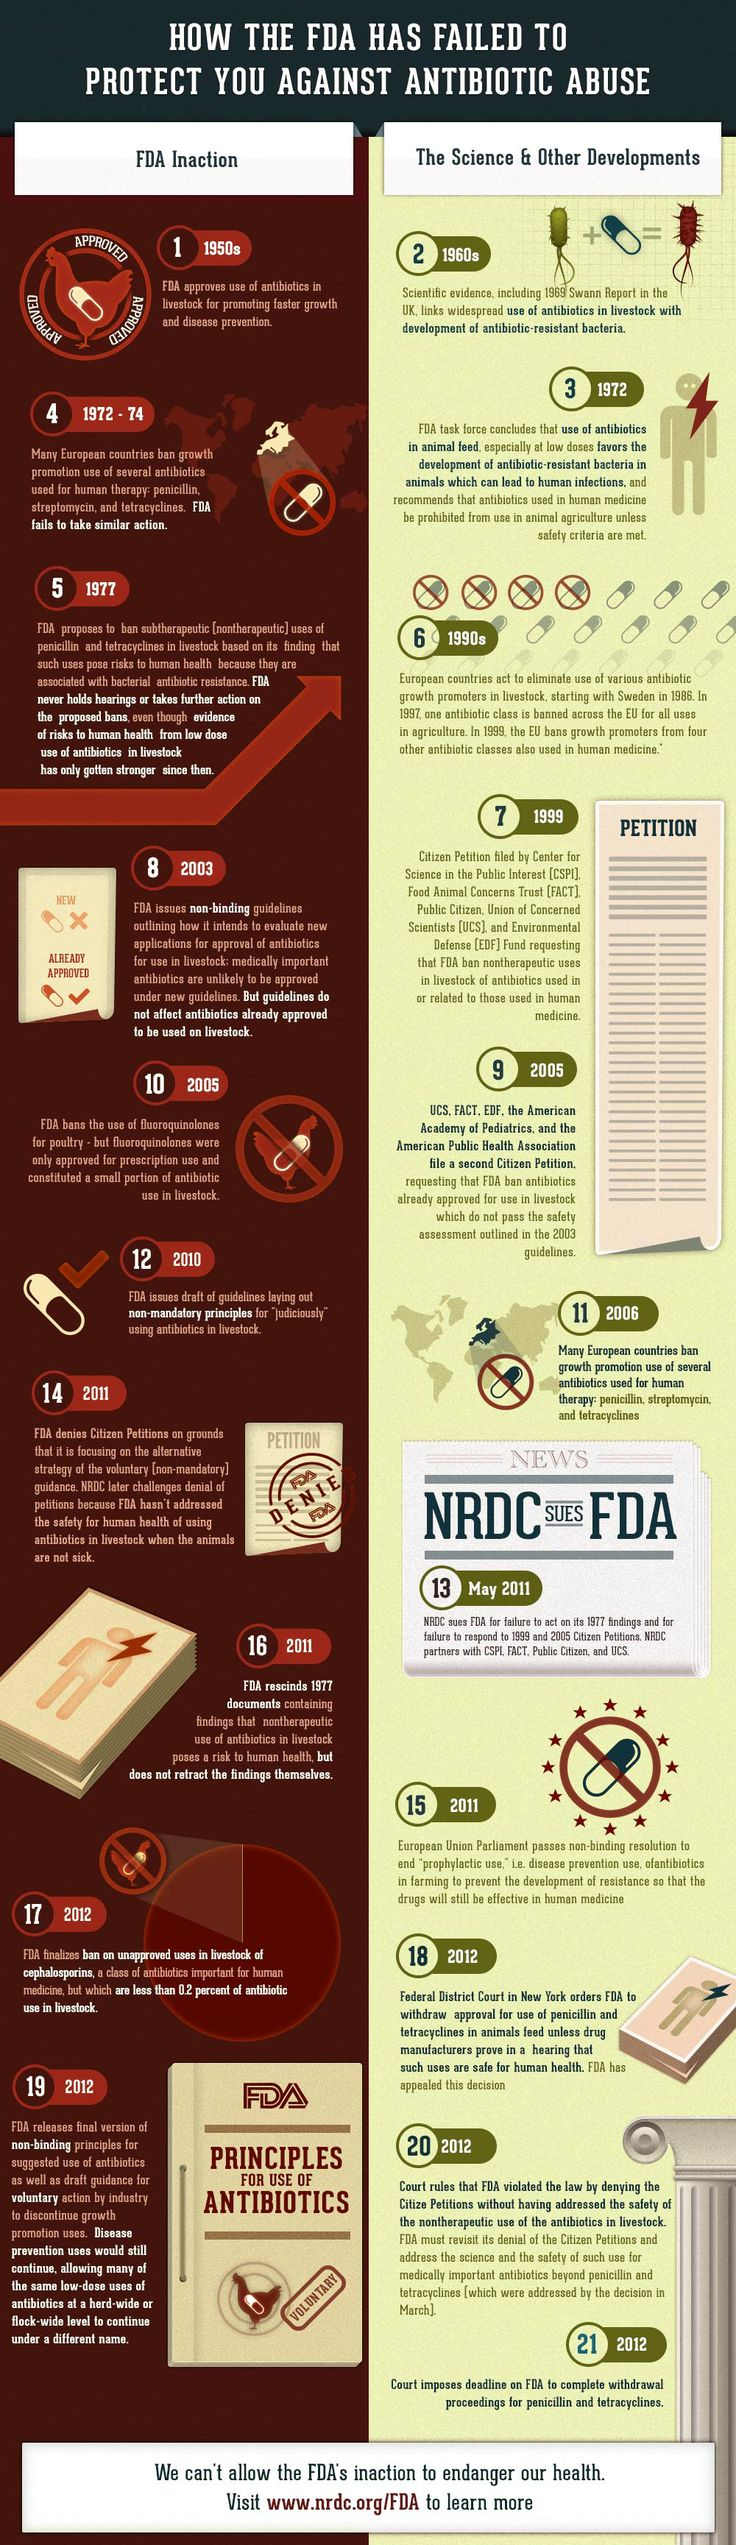 How the FDA has Failed to Protect You Against Antibiotic Abuse #infographic #food